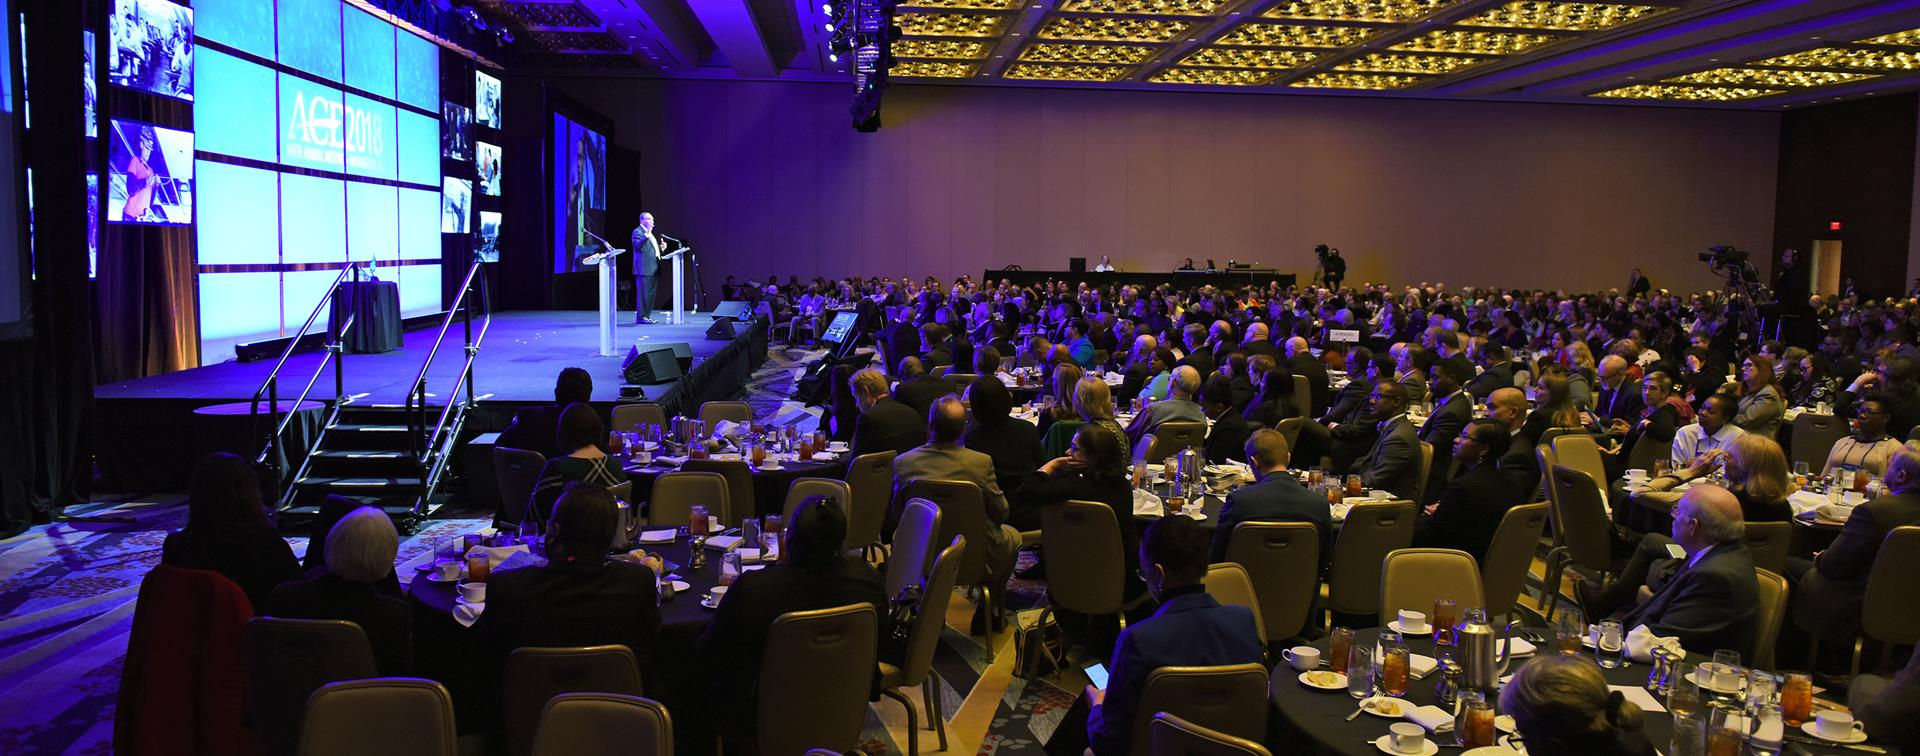 A picture of the crowd at ACE's Annual Meeting